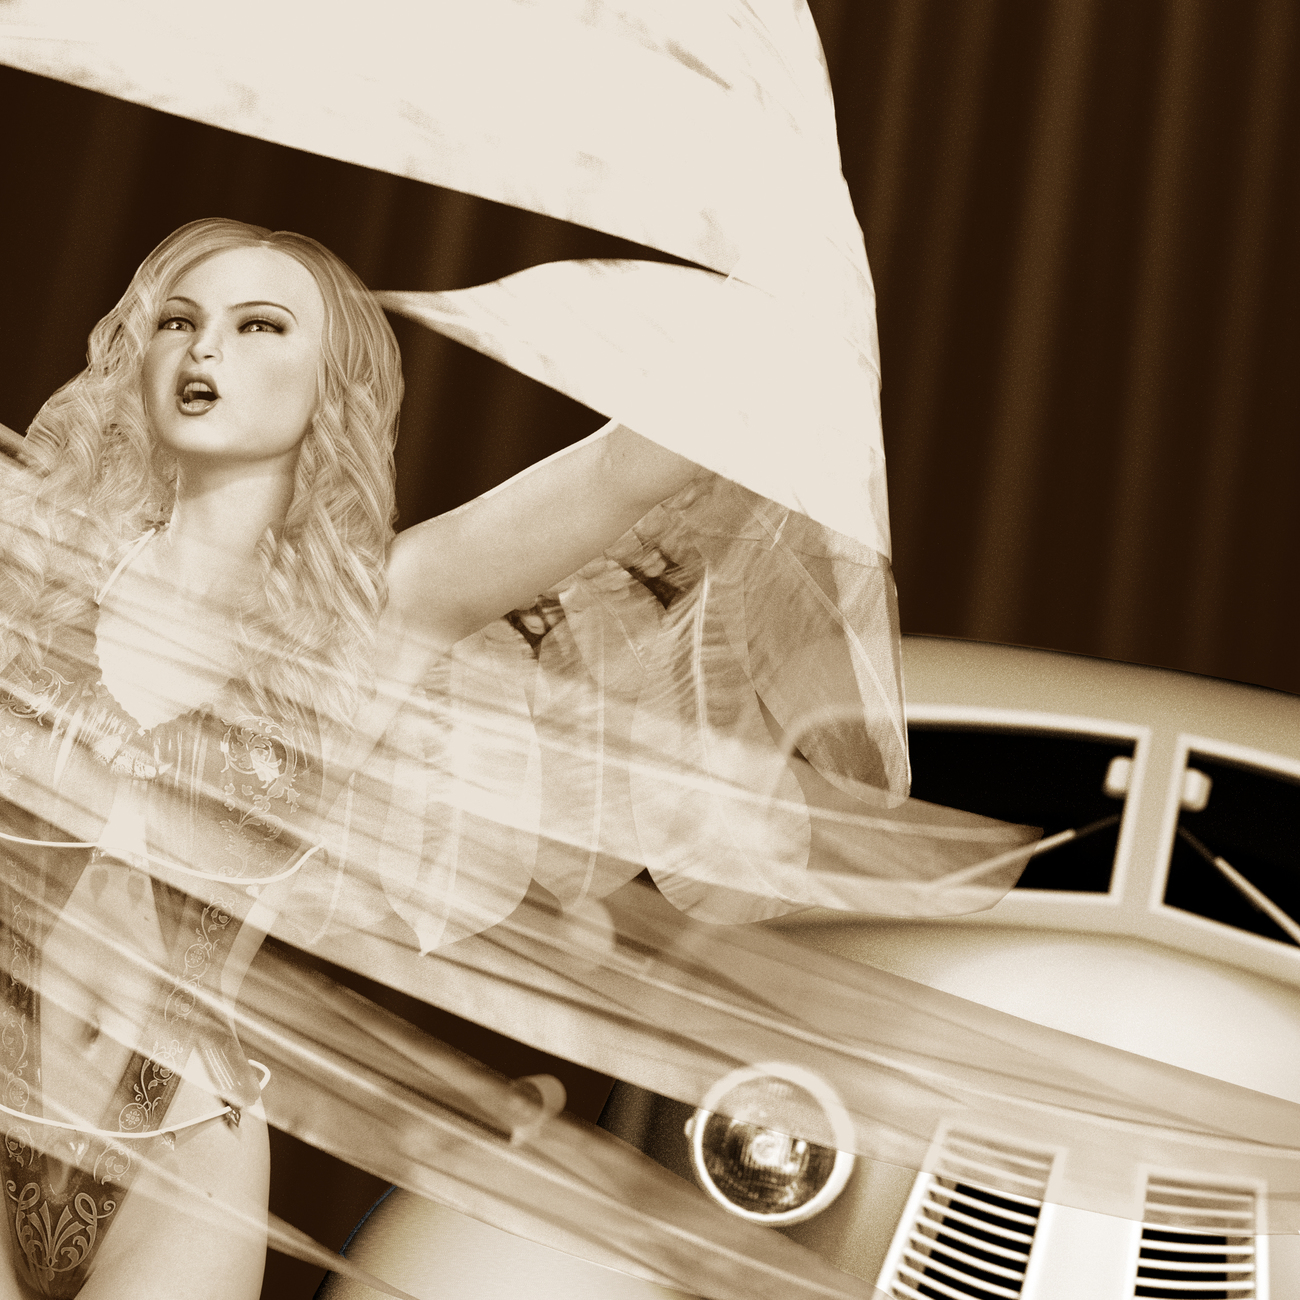 37 Buick by LPR001